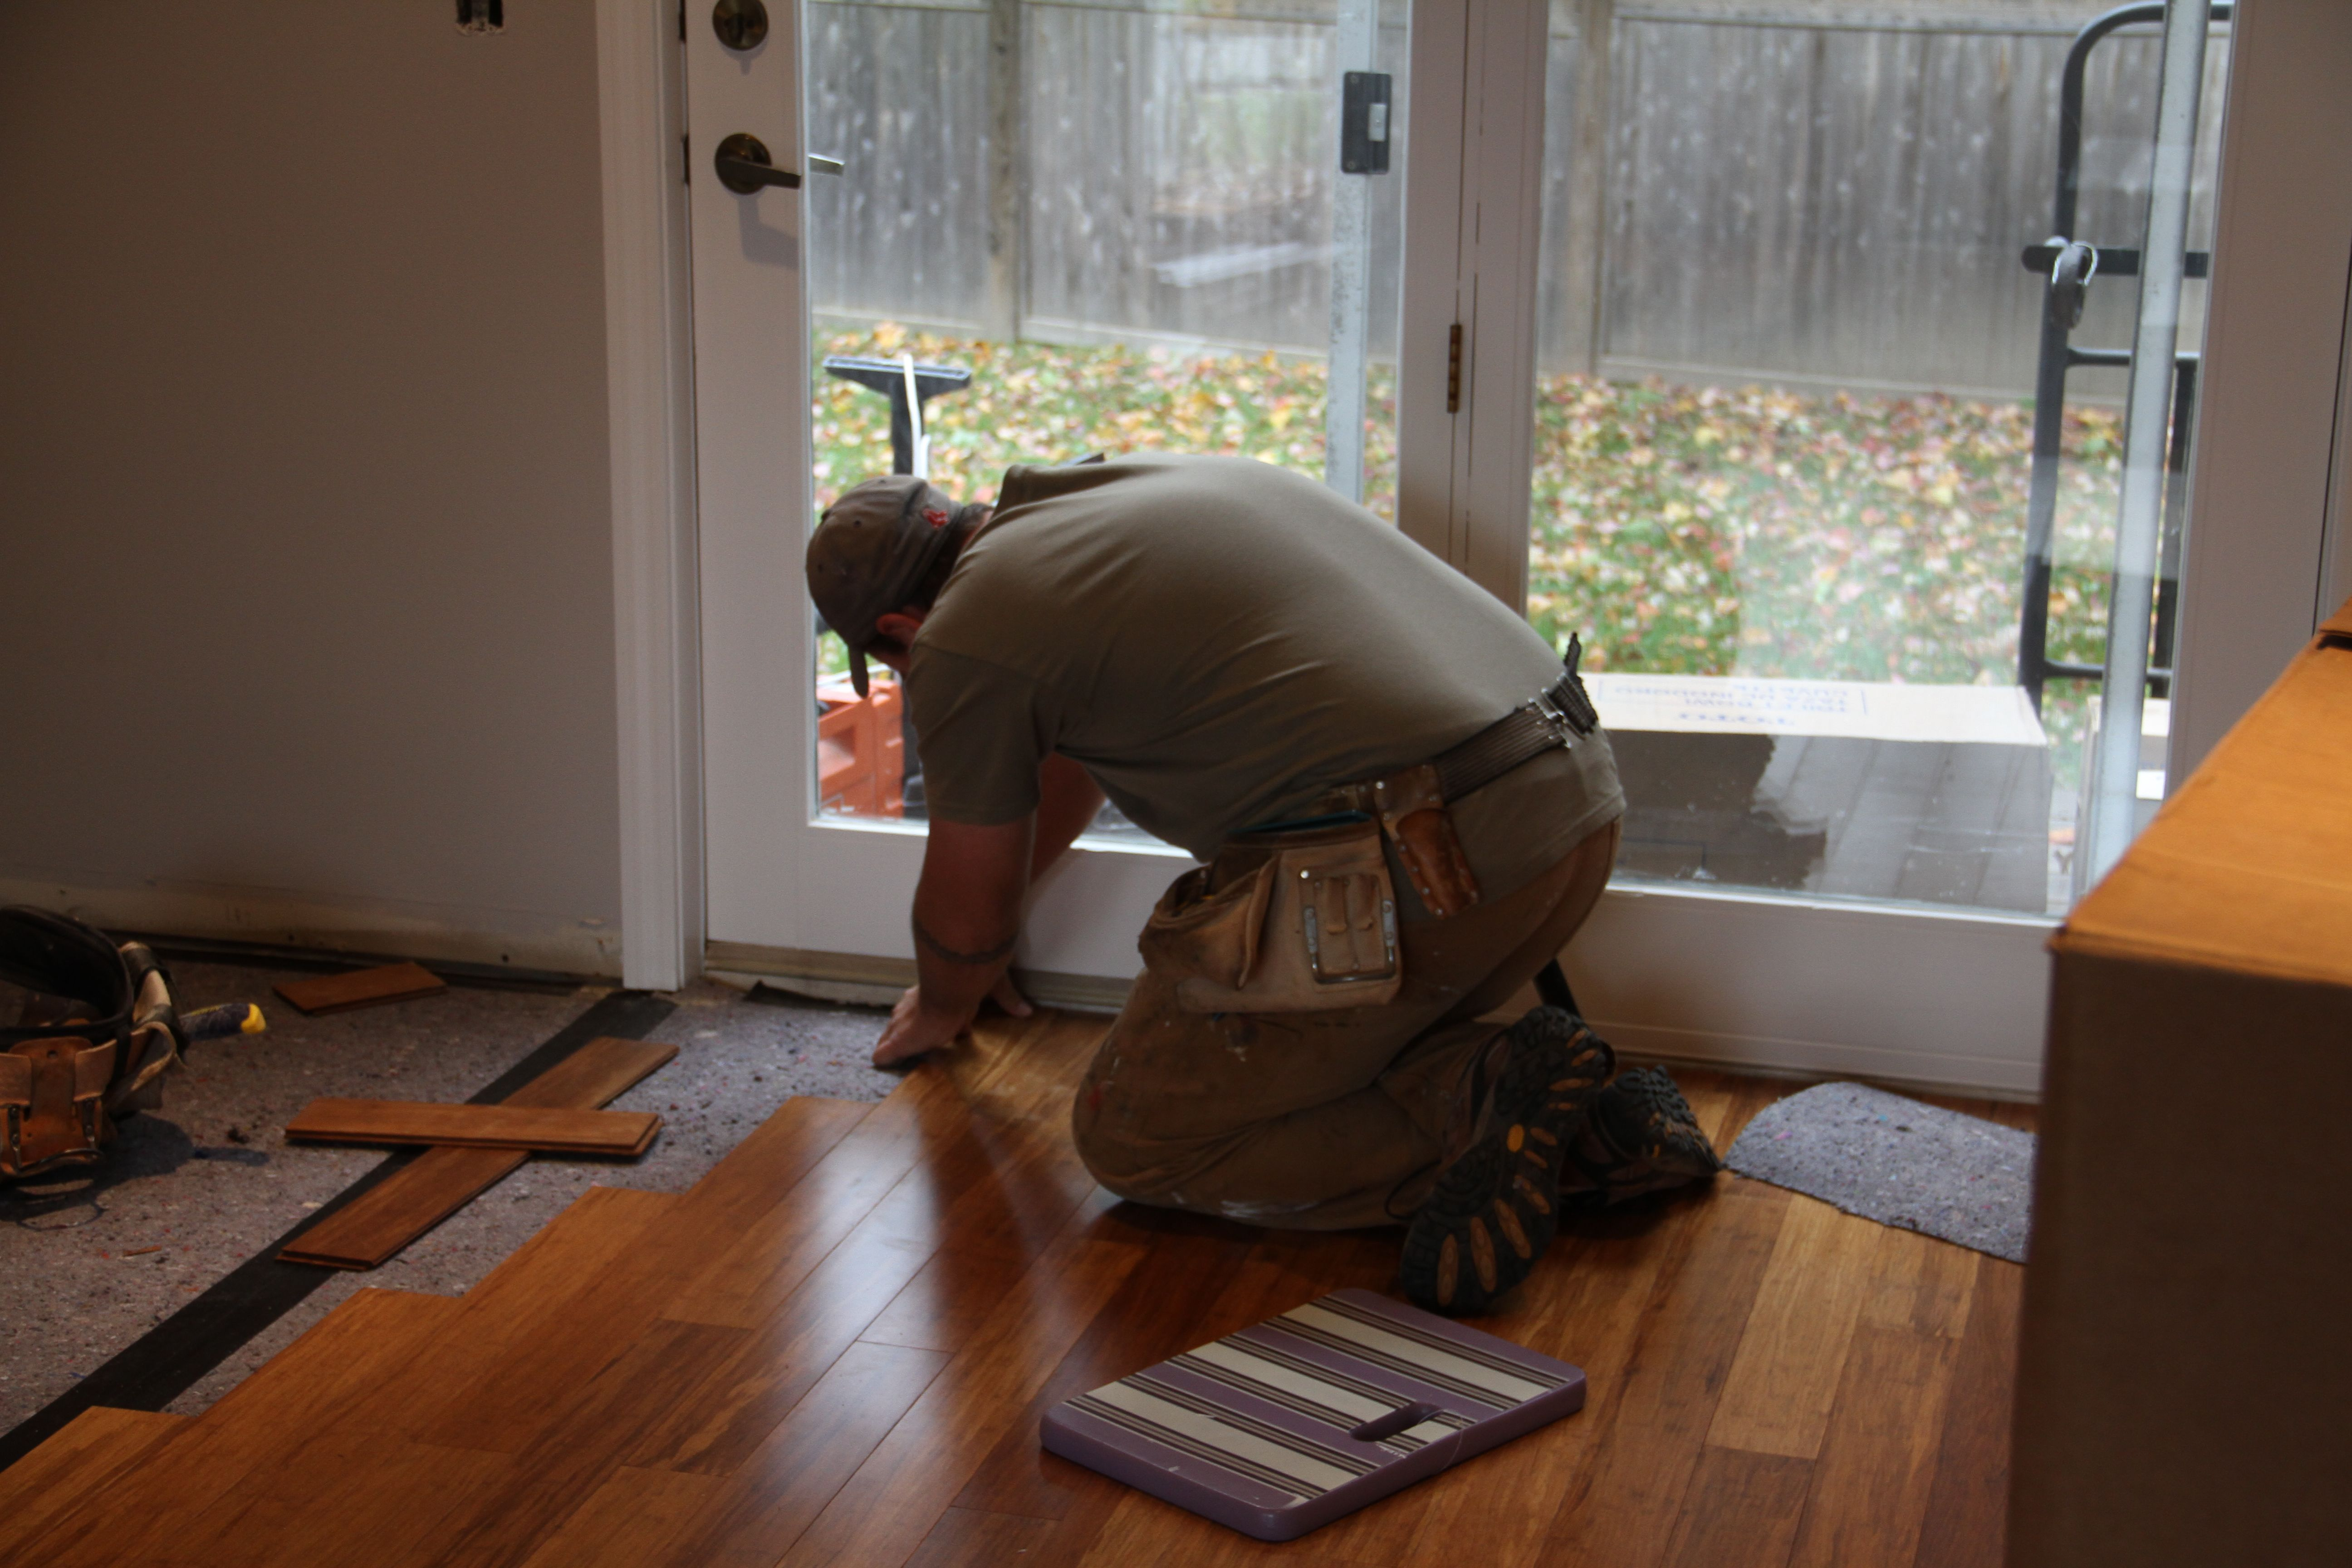 Dave working a tricky spot by the back door. (Notice that he prefers NOT to use the foam gardening pad that I and the other gents prefer for our knee-balls.)